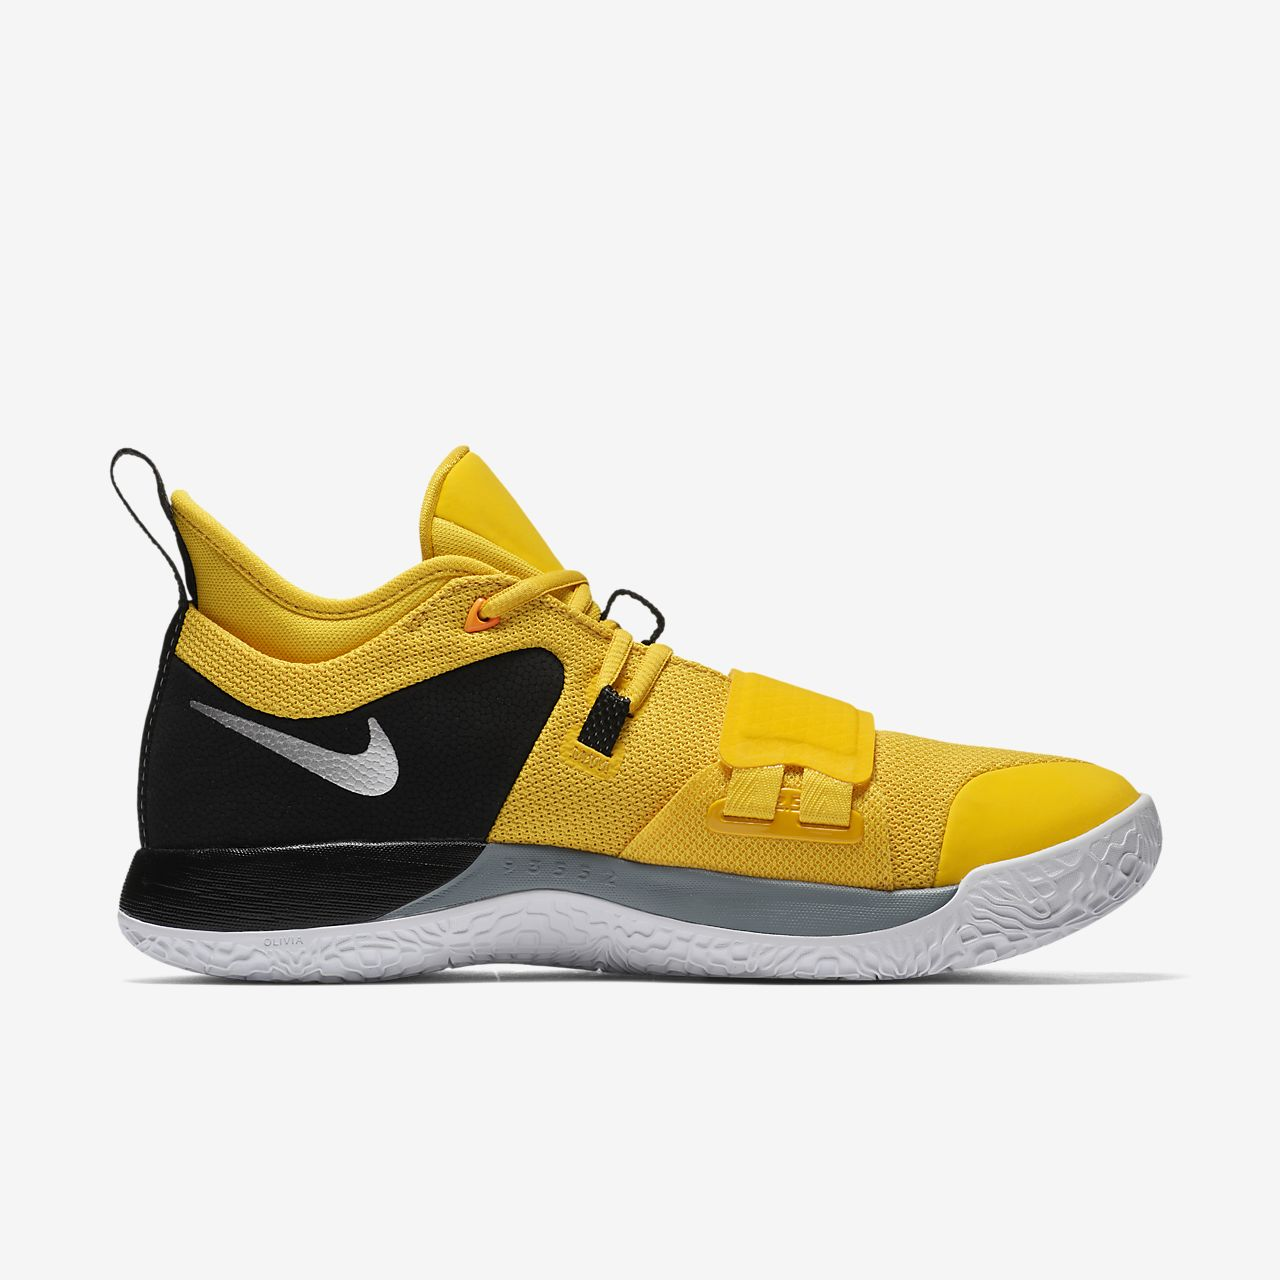 Low Resolution PG 2.5 Basketball Shoe PG 2.5 Basketball Shoe dbfb8d4755